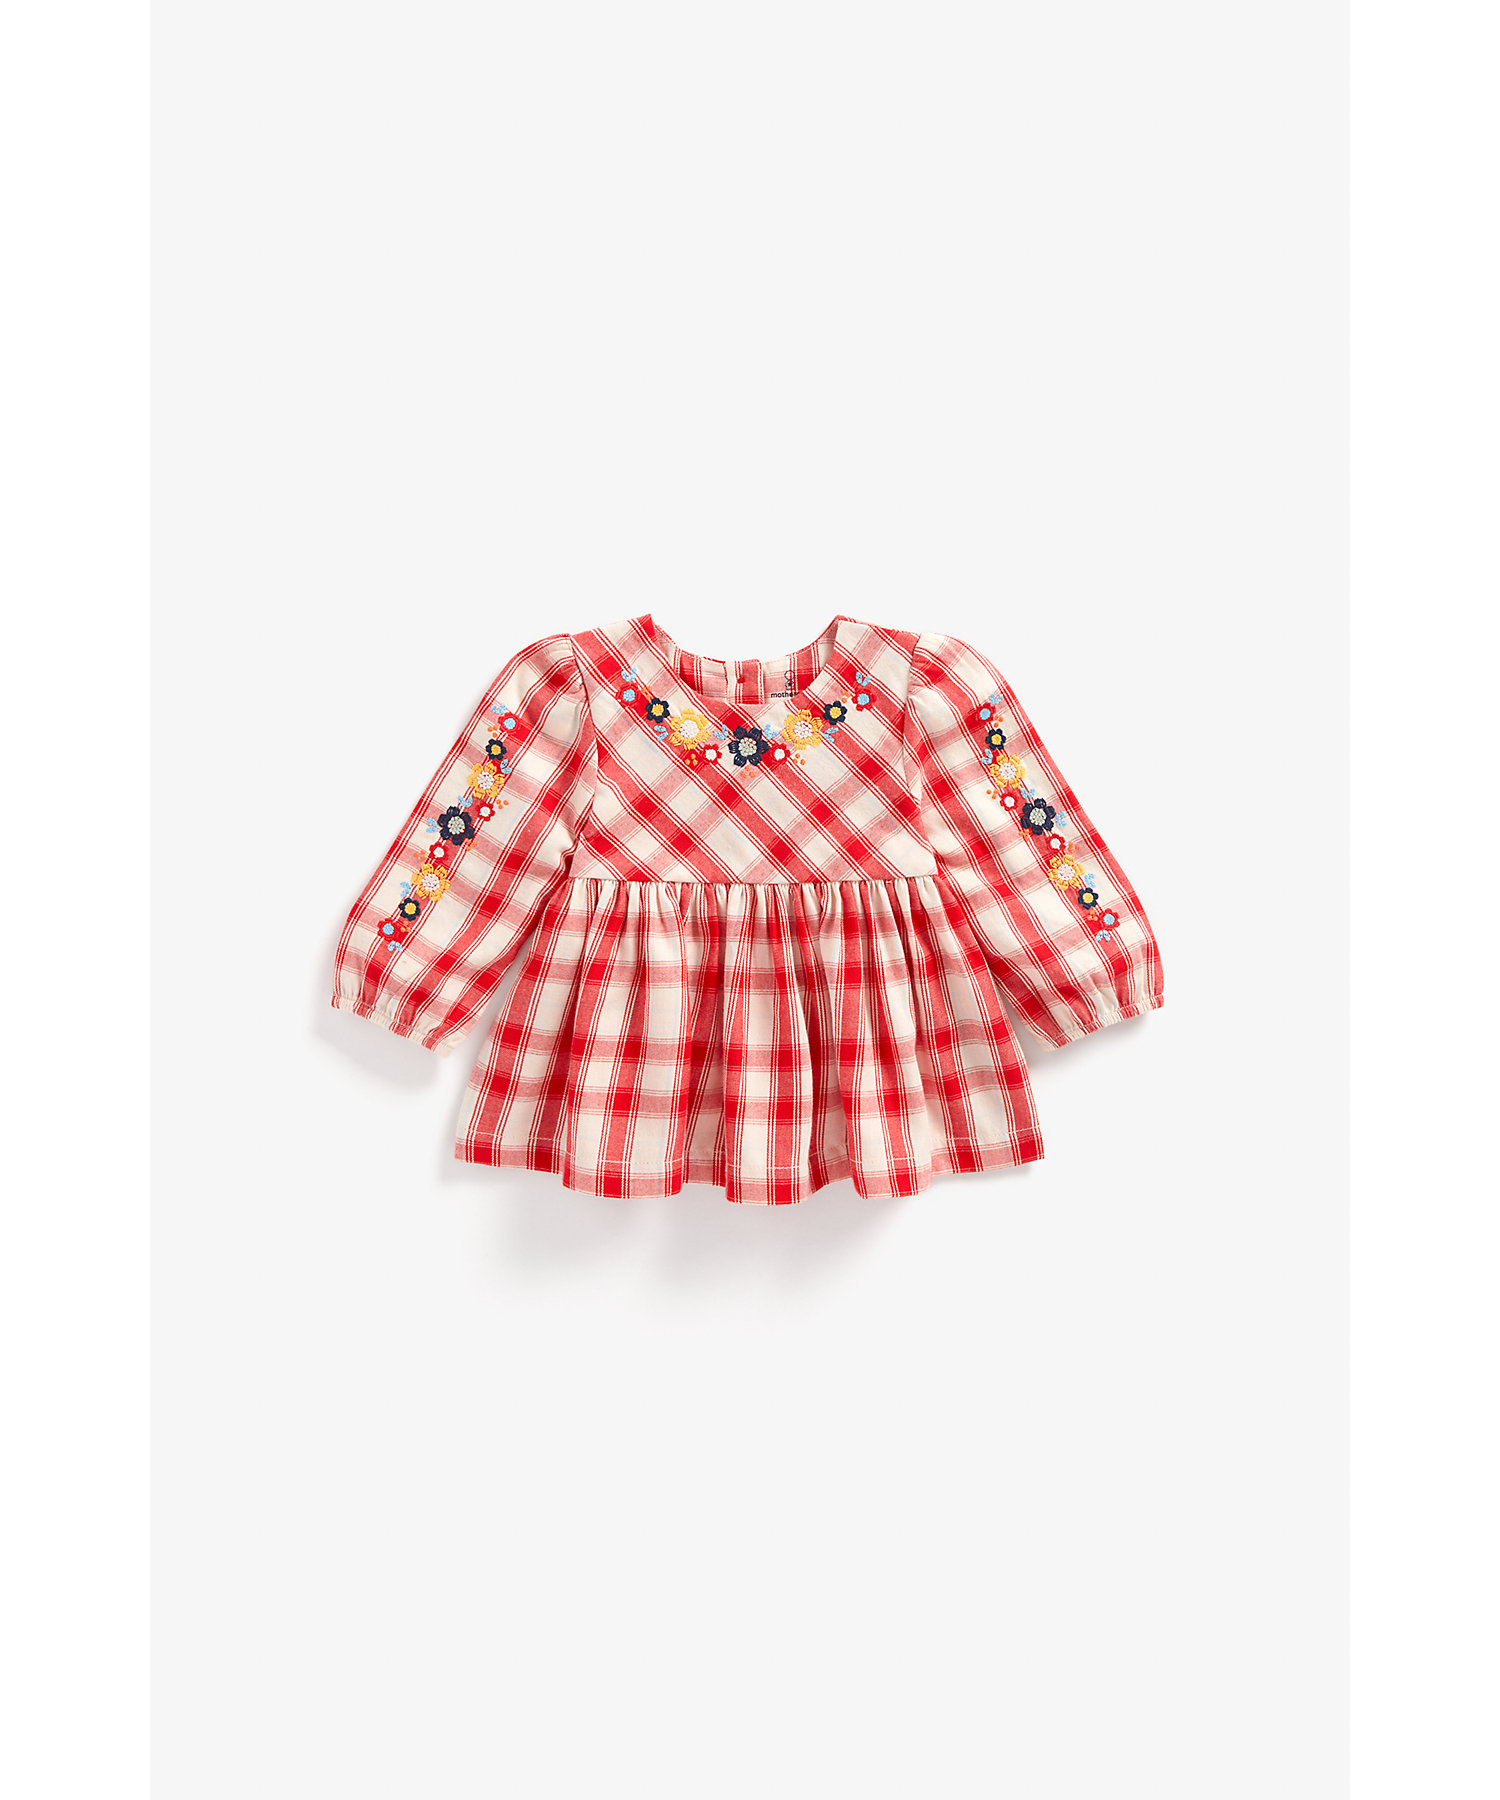 Mothercare   Girls Full Sleeves Check Top Floral Embroidery - Red